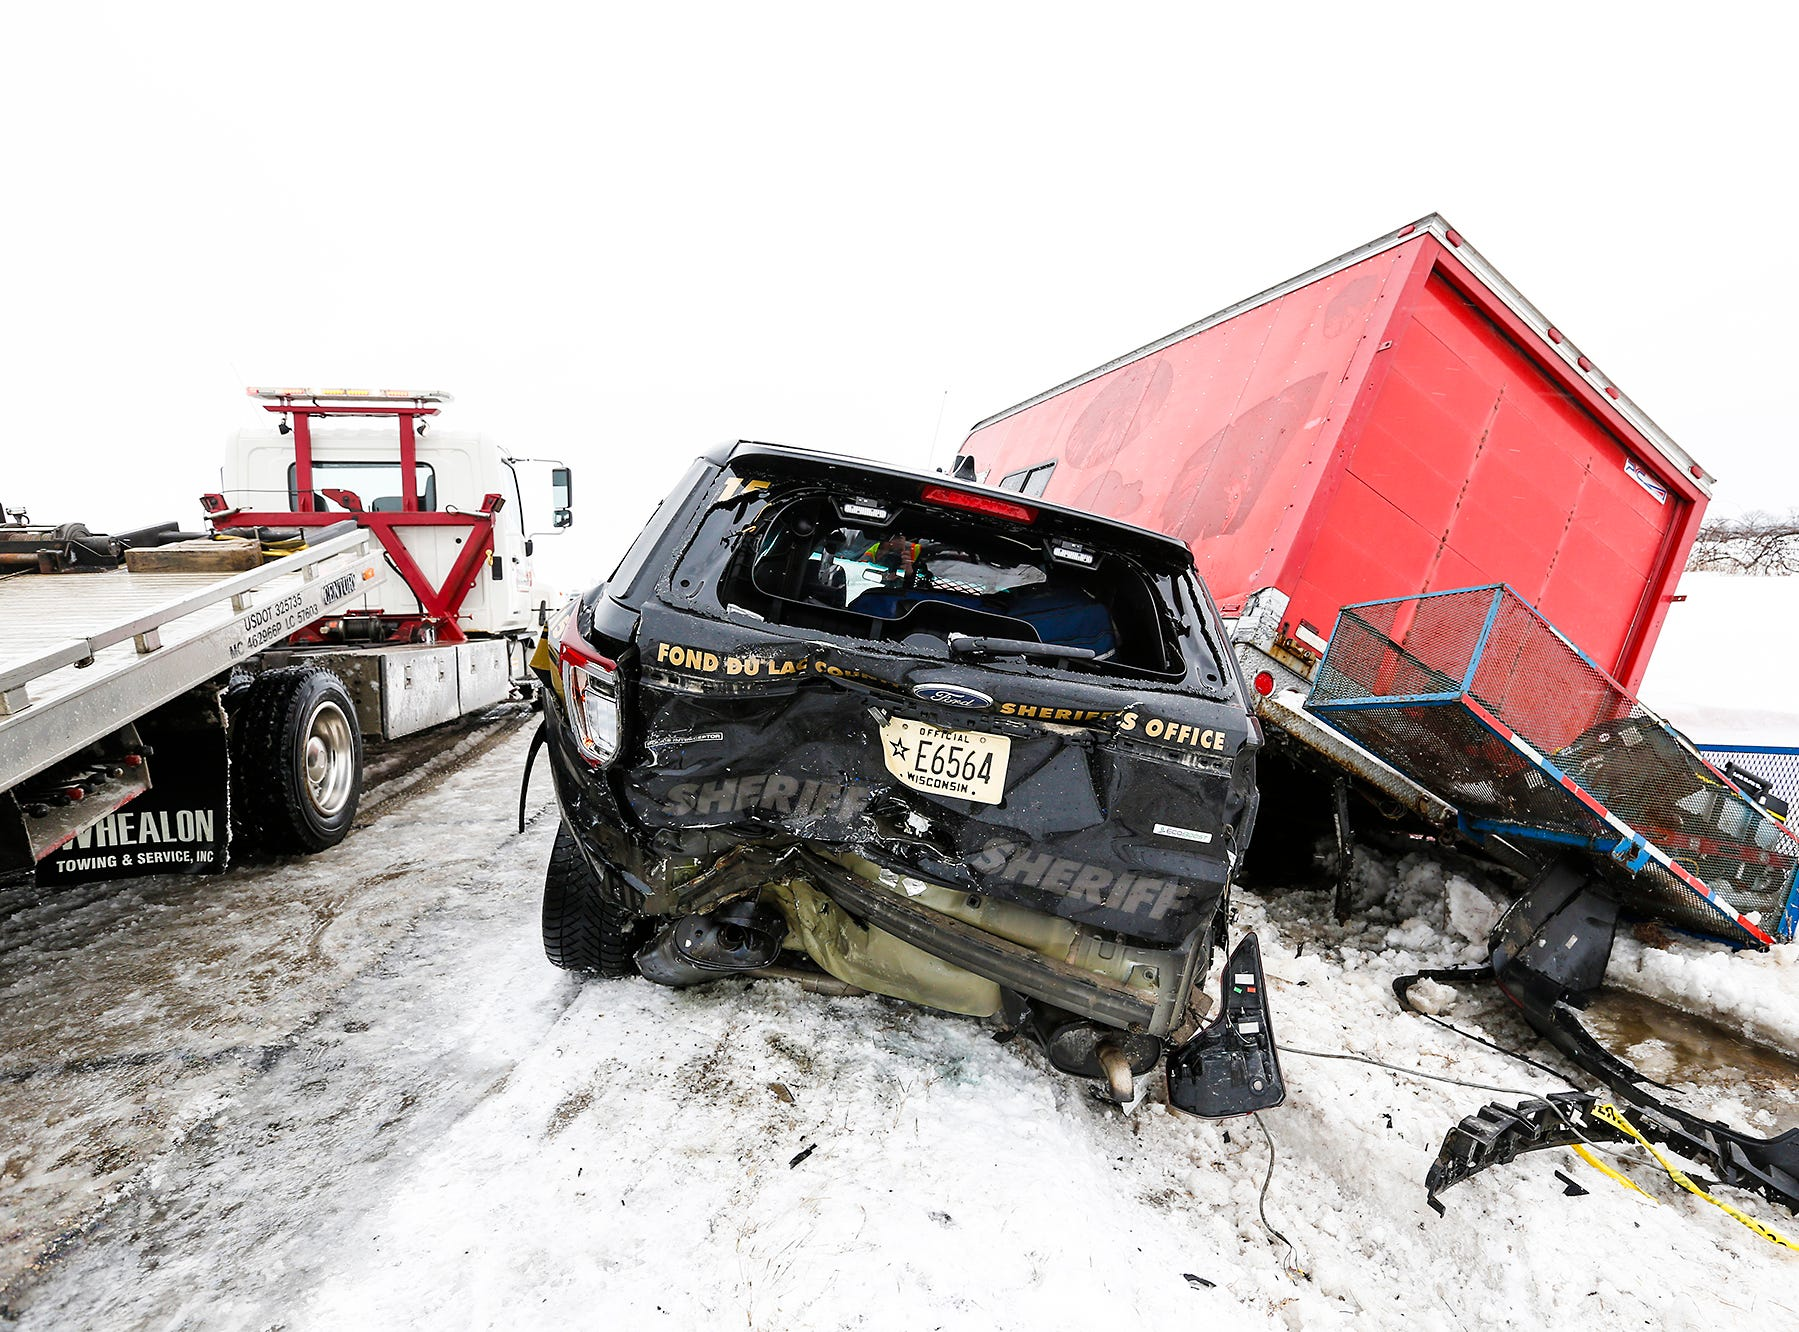 A Fond du Lac County Sheriff's Office squad car, along with two other vehicles was involved in a crash Sunday, February 24, 2019, on Interstate 41 near County Highway F south of Fond du Lac, Wisconsin. Doug Raflik/USA TODAY NETWORK-Wisconsin